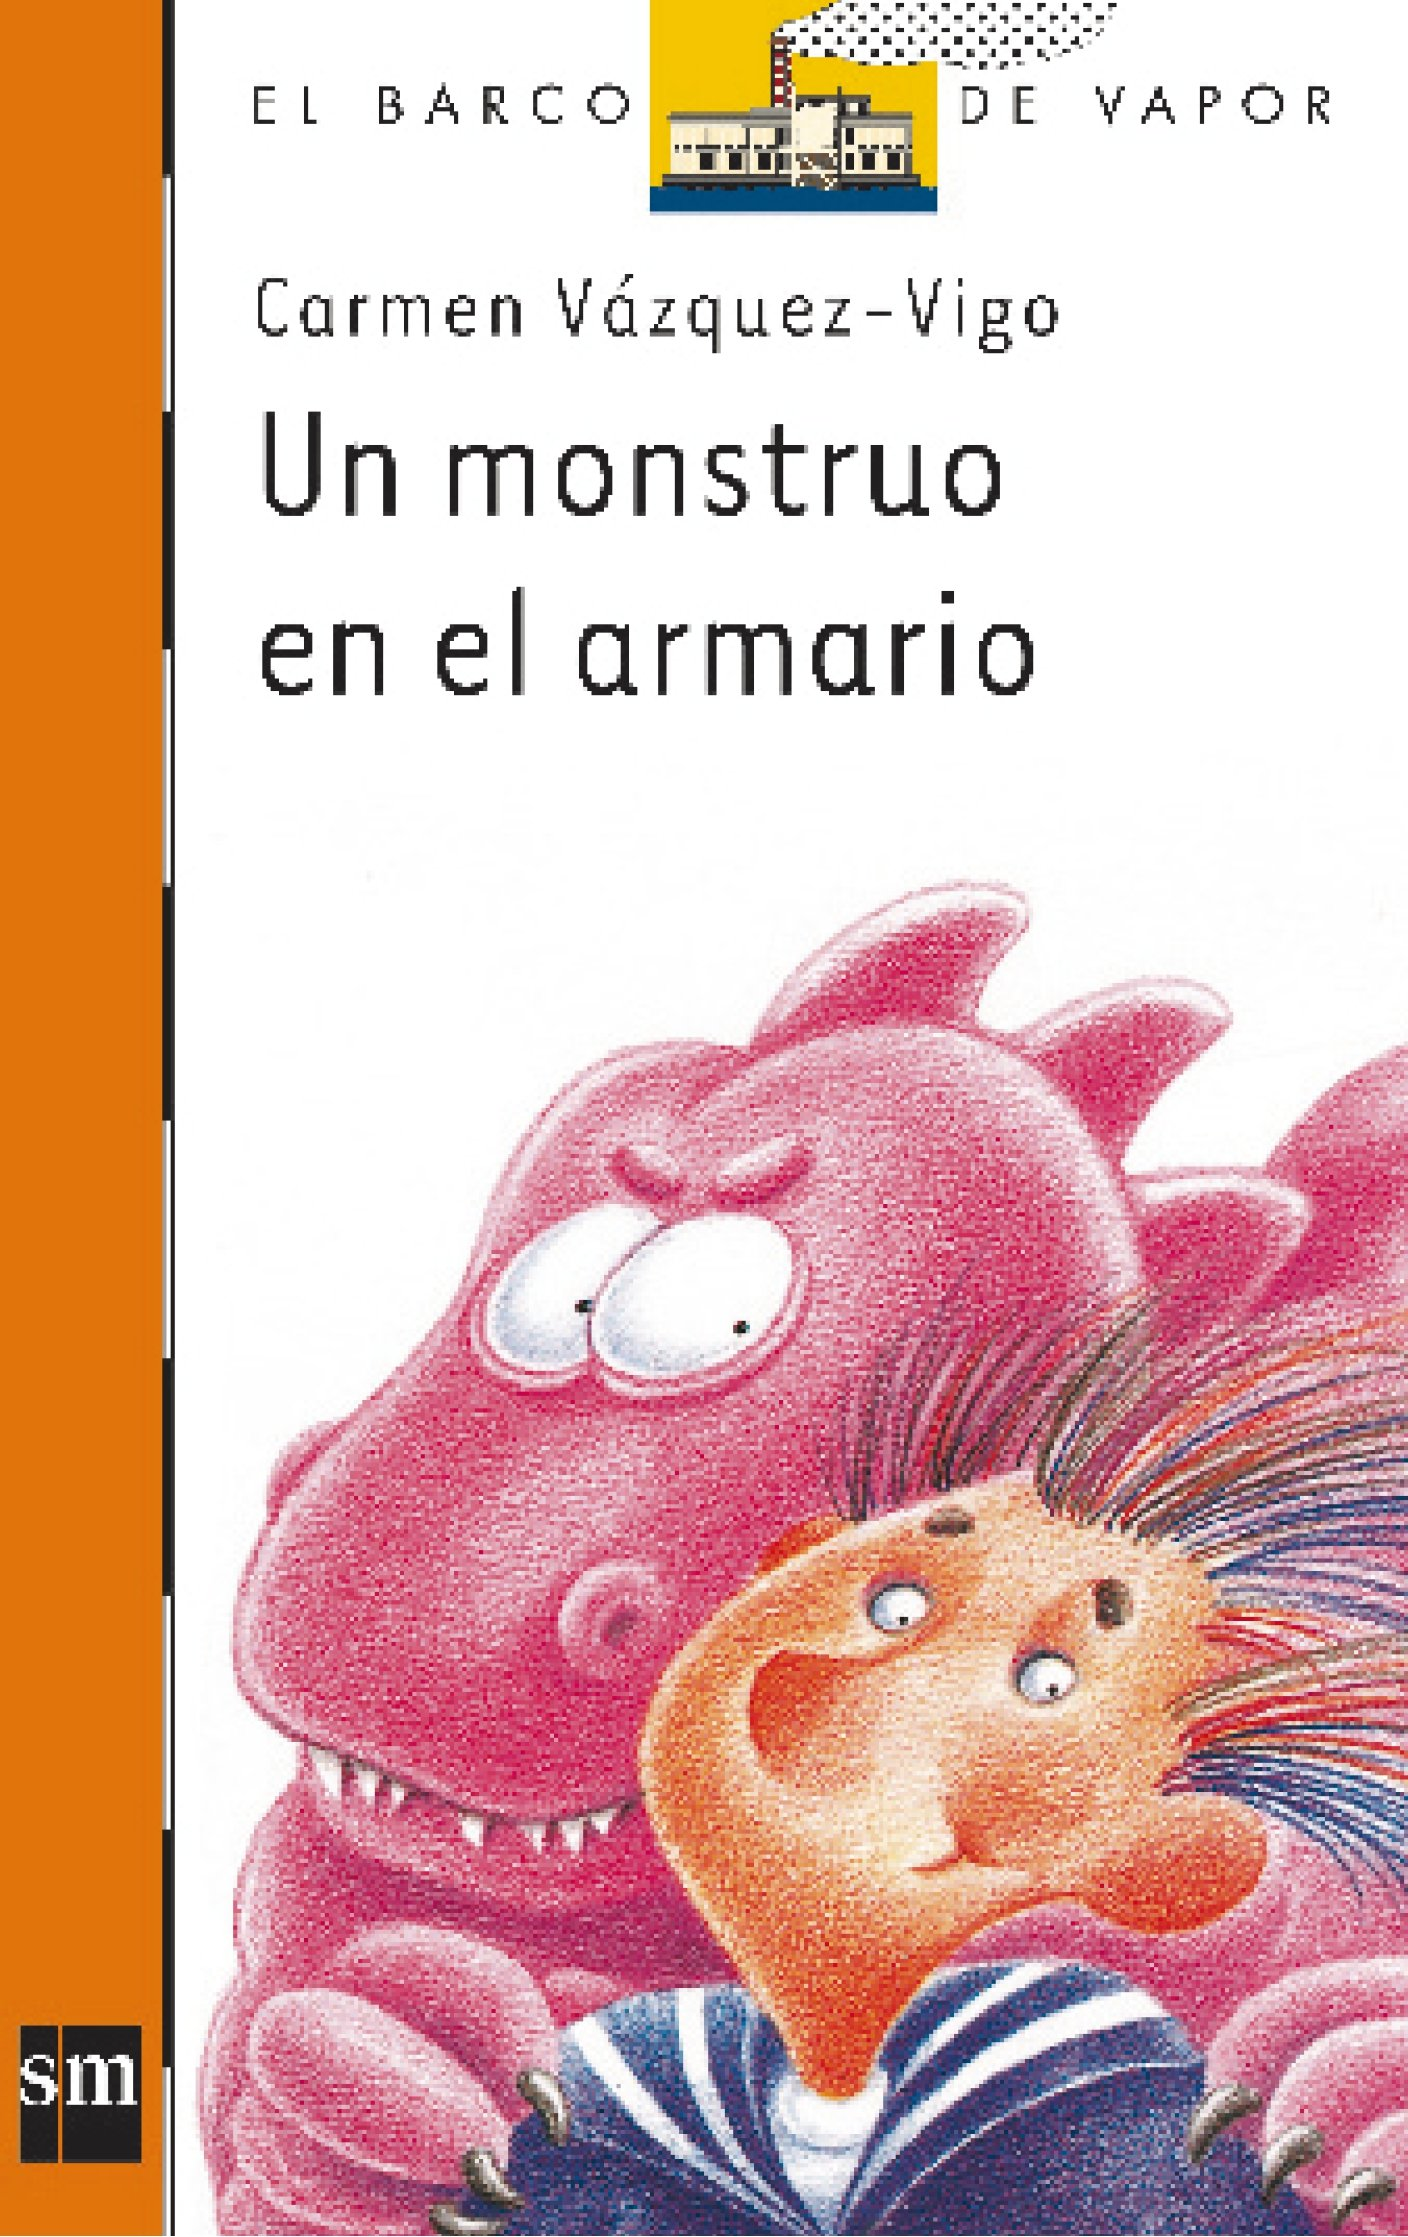 Un monstruo en el armario/ A monster in my dresser (El barco de vapor) (Spanish Edition): Carmen Vazquez Vigo: 9788434833678: Amazon.com: Books